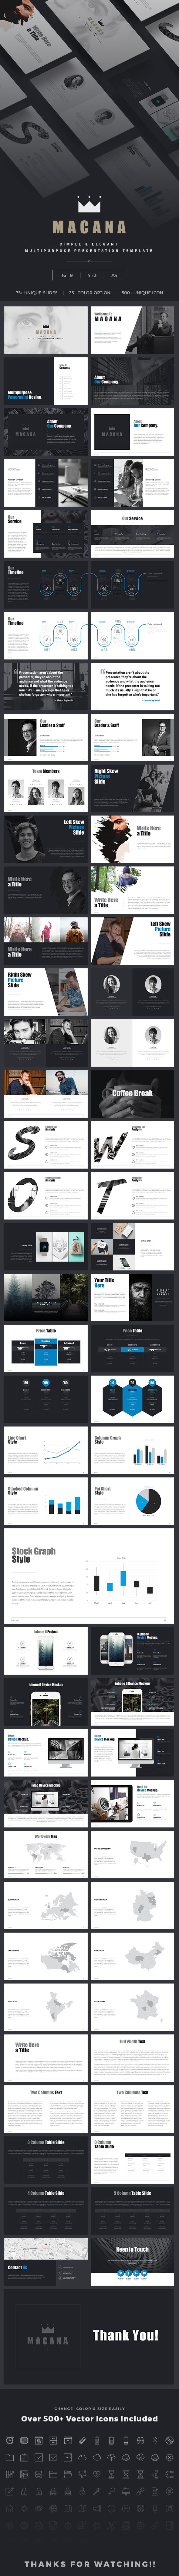 simple presentation topic best ideas about presentation topics  images about powerpoint powerpoint clean powerpoint presentation template best ever simple powerpoint presentation template based on